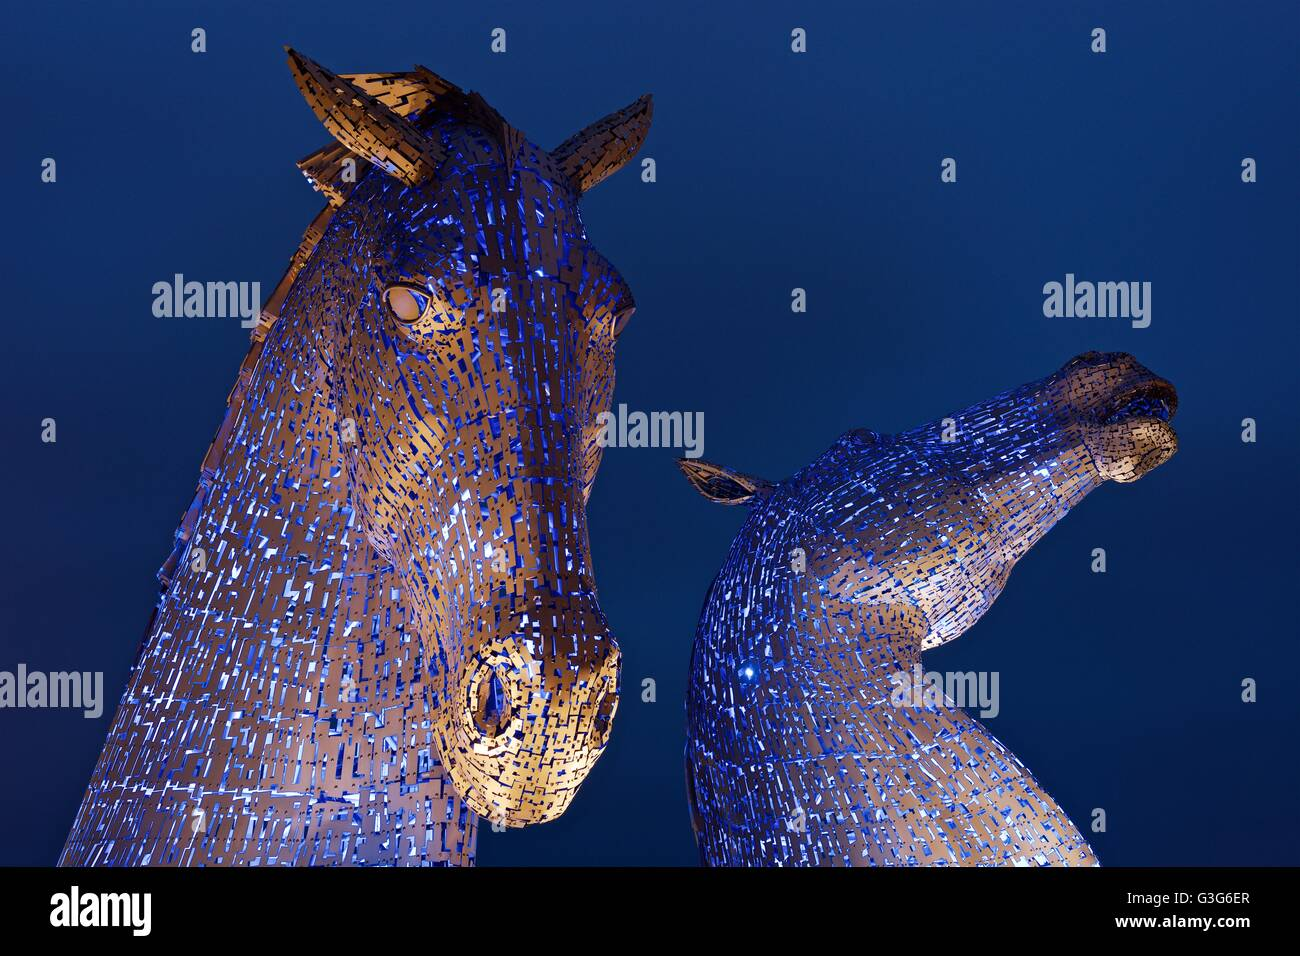 A colour image taken of the two Kelpies at the Kelpies in Helix Park Falkirk lit in blue during the evening twilight - Stock Image